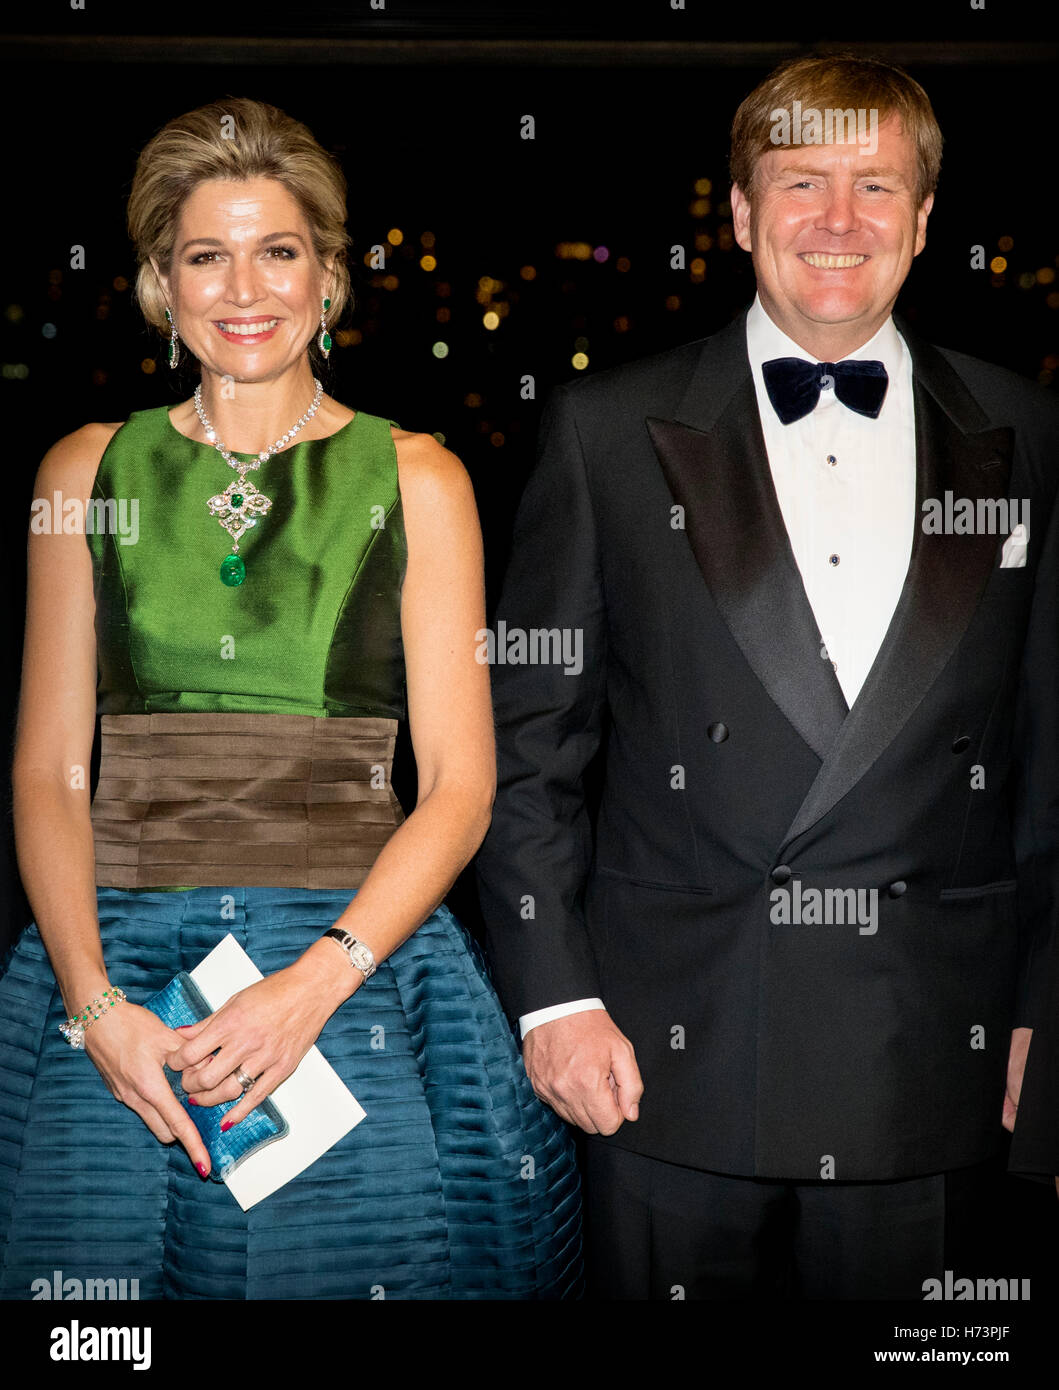 Sydney, Australia. 2nd November, 2016. King Willem-Alexander and Queen Maxima of The Netherlands offer an concert - Stock Image